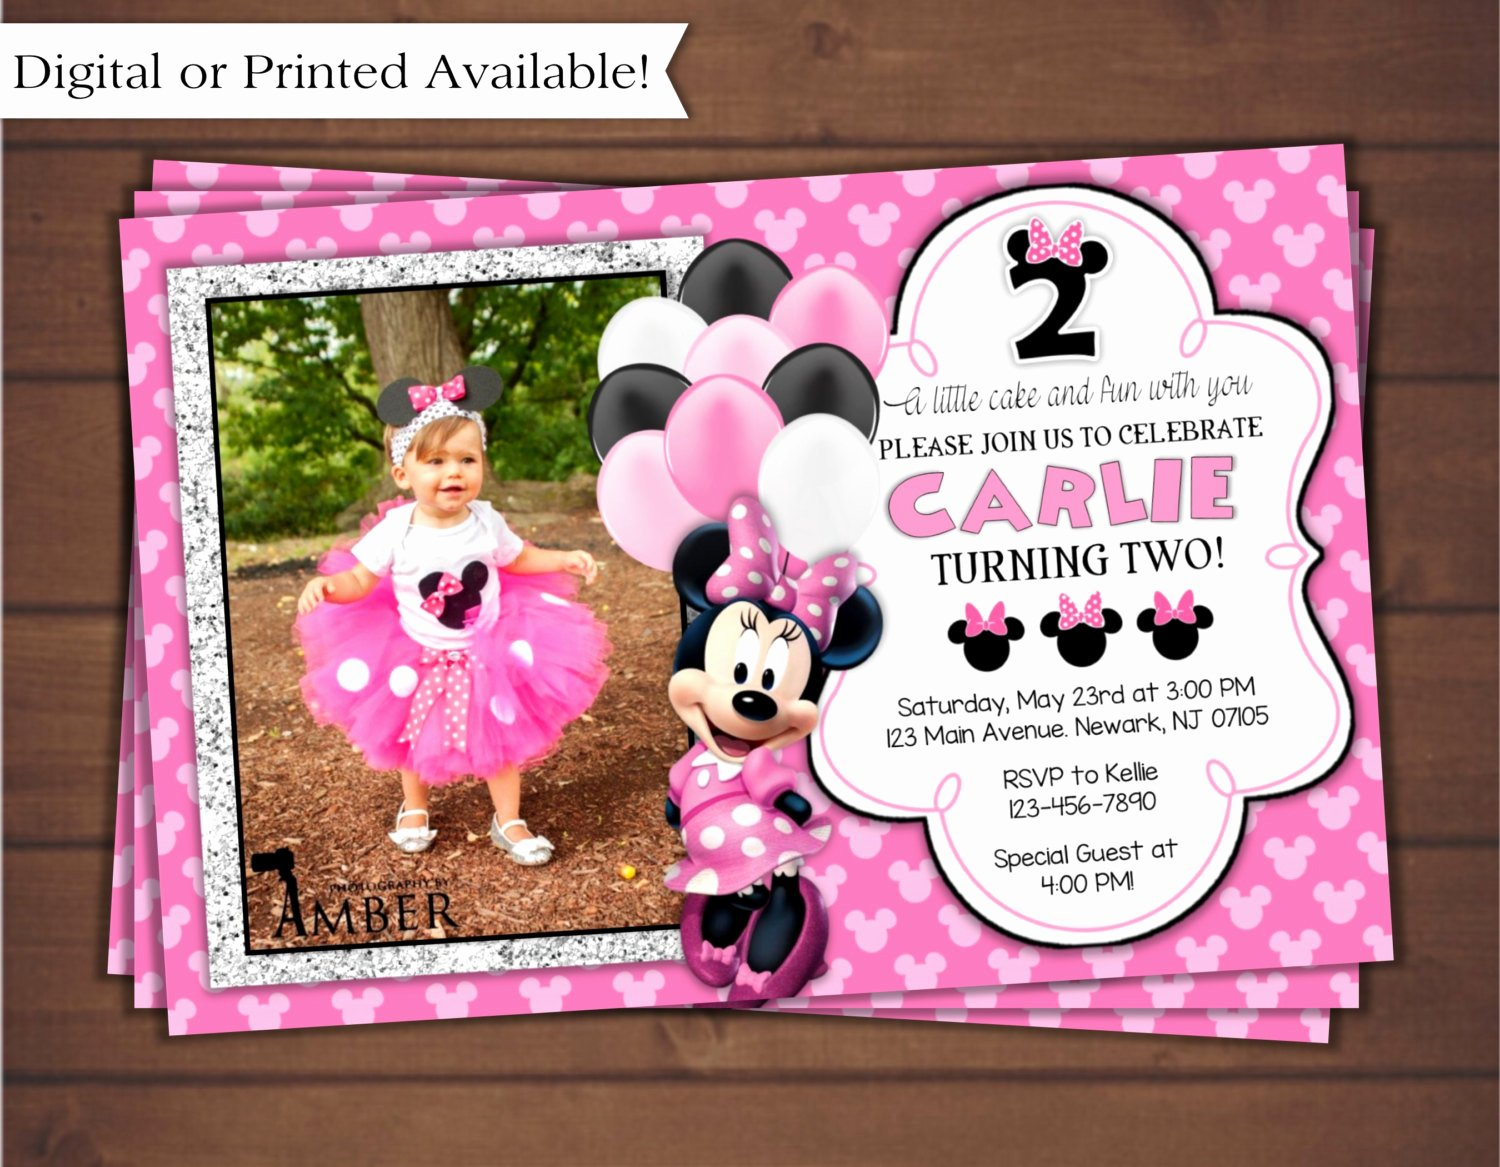 Minnie Mouse Birthday Party Invitations Beautiful Minnie Mouse Birthday Invitation Digital Minnie Mouse